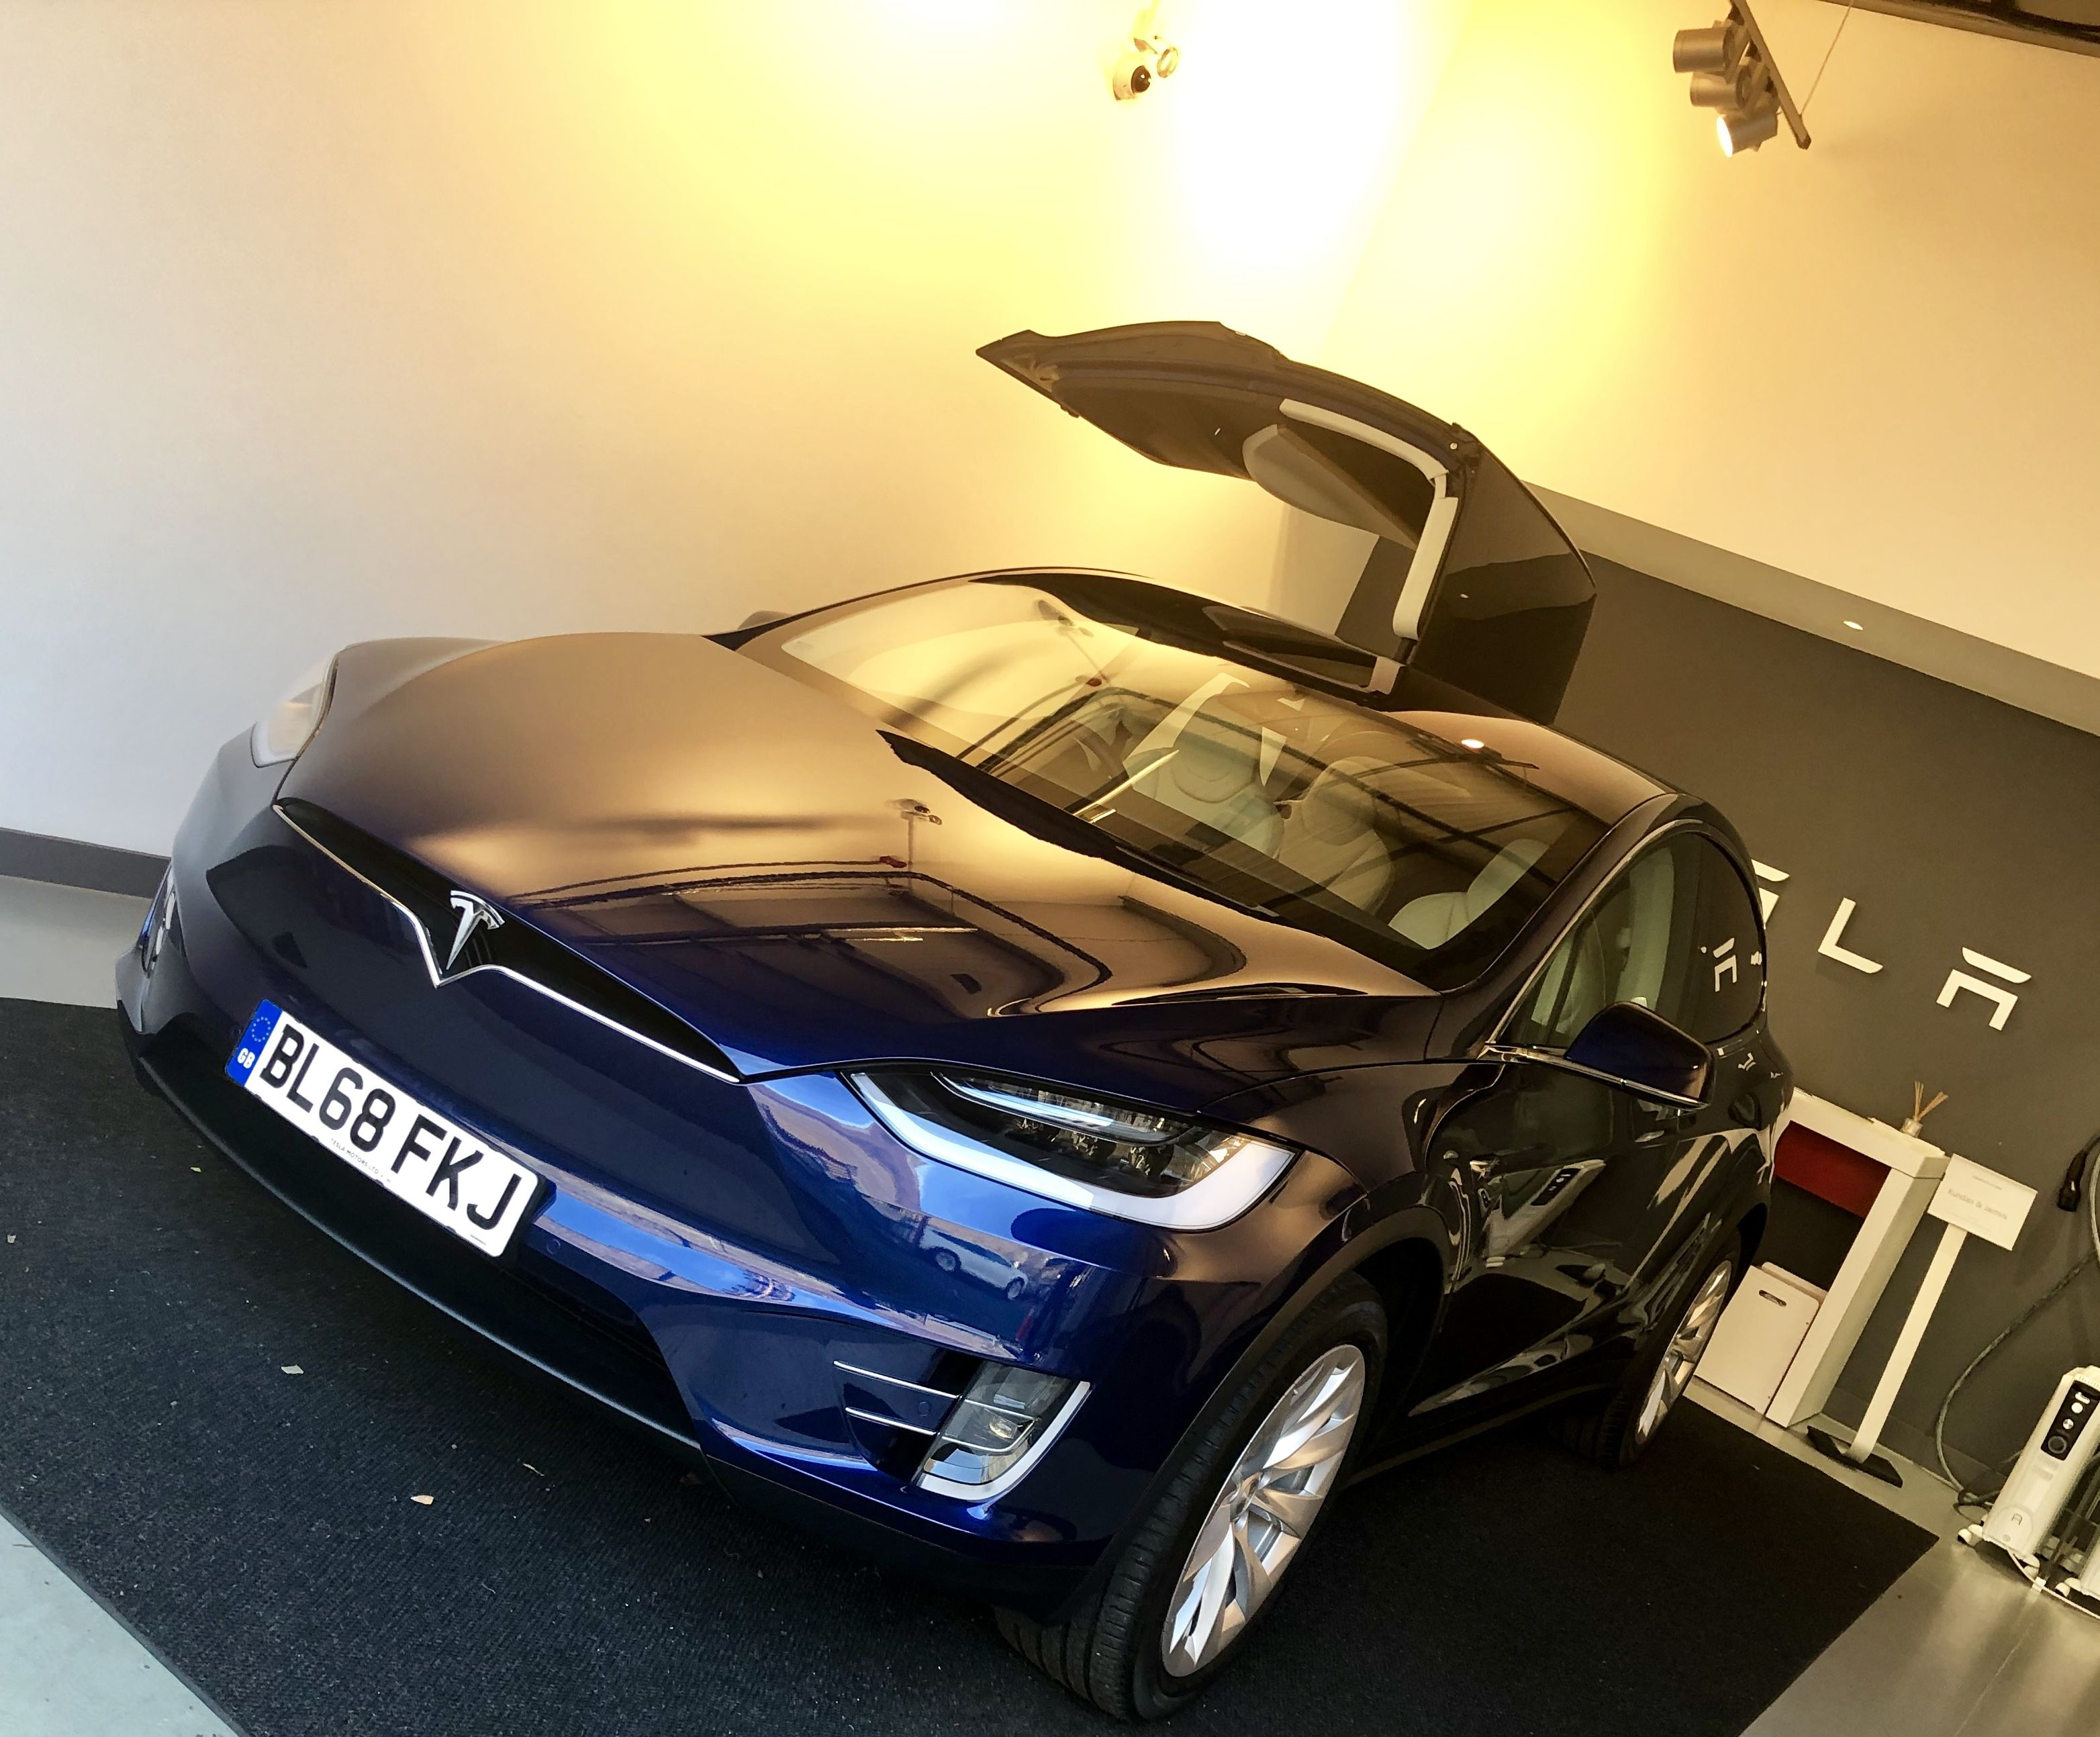 Tesla Sports Car Price In India - Apps for Android